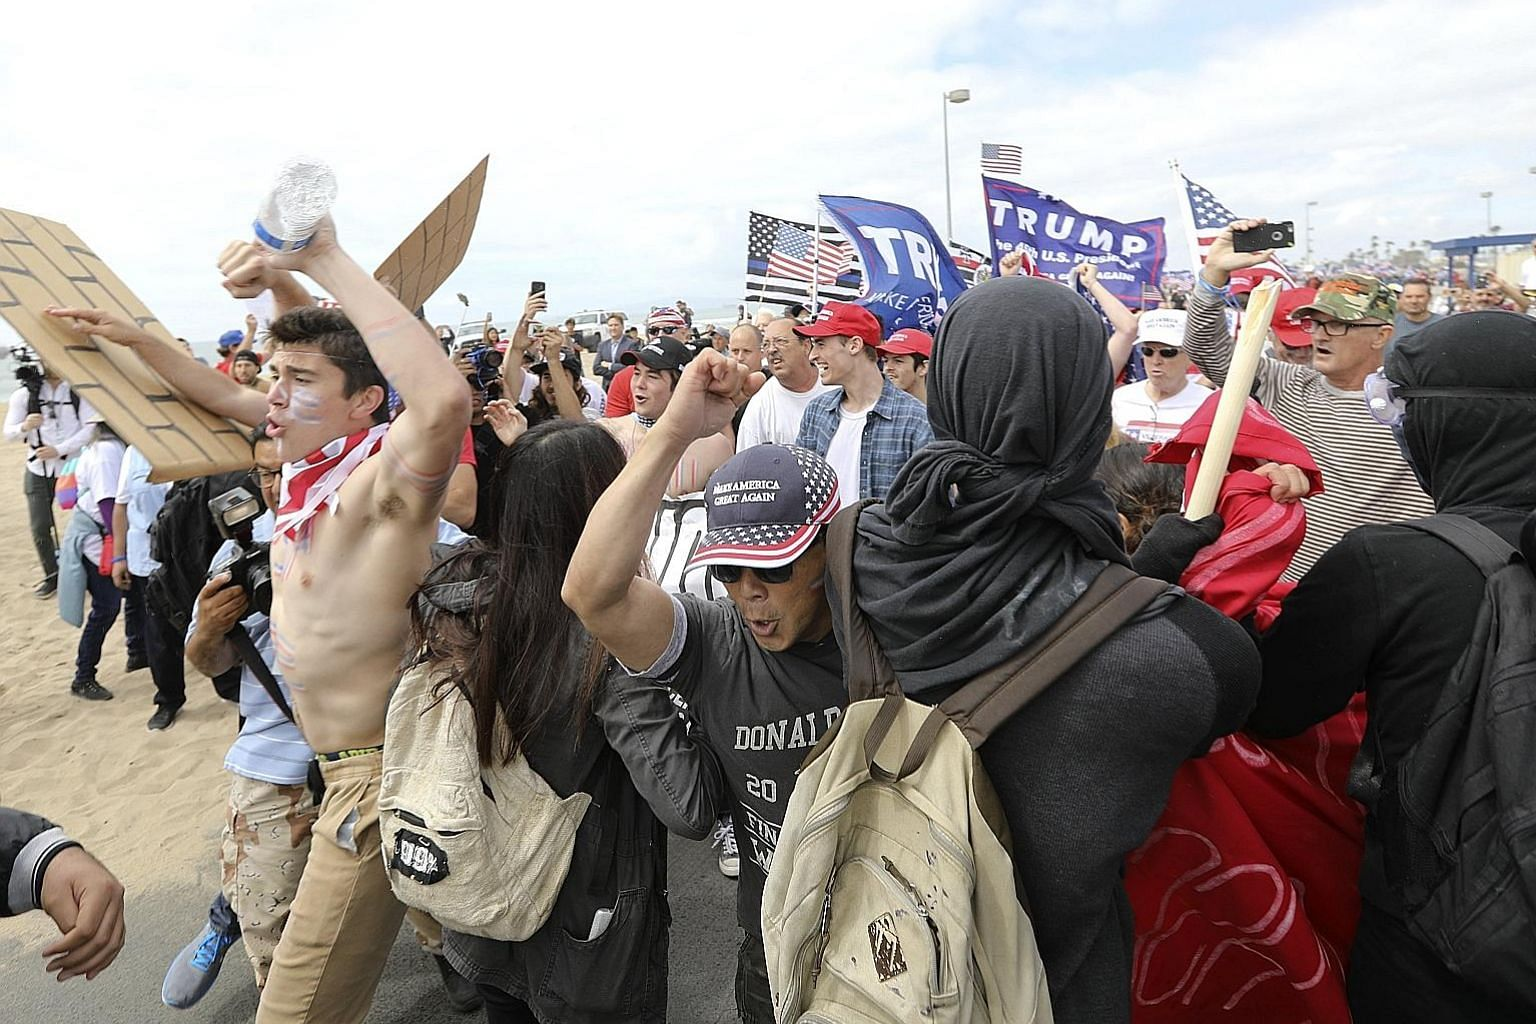 Trump supporters breaking through a human wall of anti-Trump protesters during a rally in Huntington Beach, California, last Saturday. Support for Mr Trump appeared unflagging despite the collapse of his campaign promise to overhaul the healthcare sy